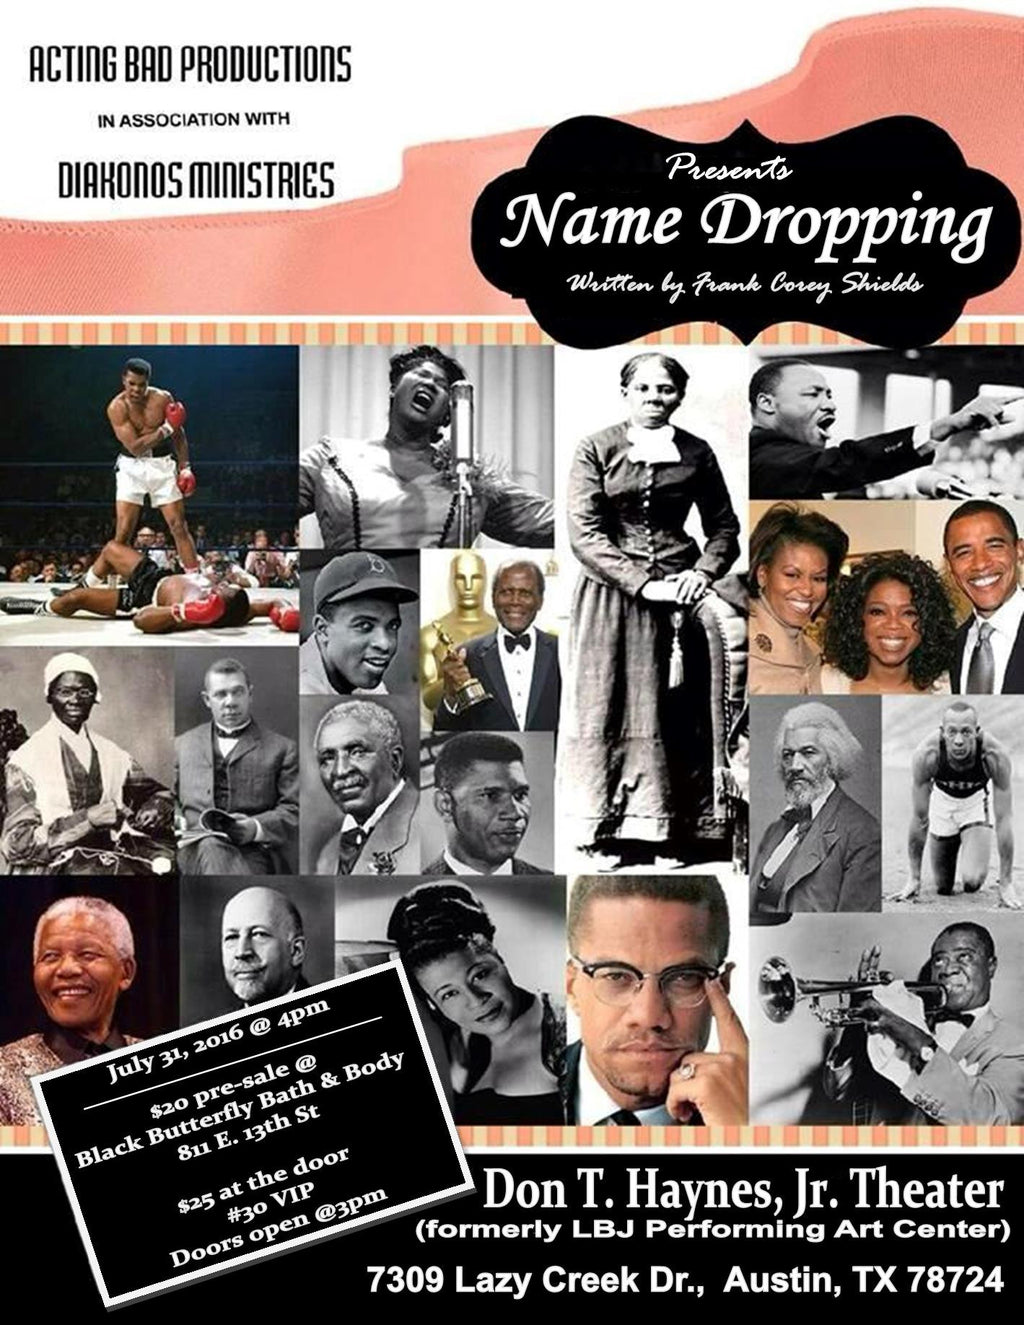 Tickets Available @Black Butterfly For Upcoming Play titled NAME DROPPING!